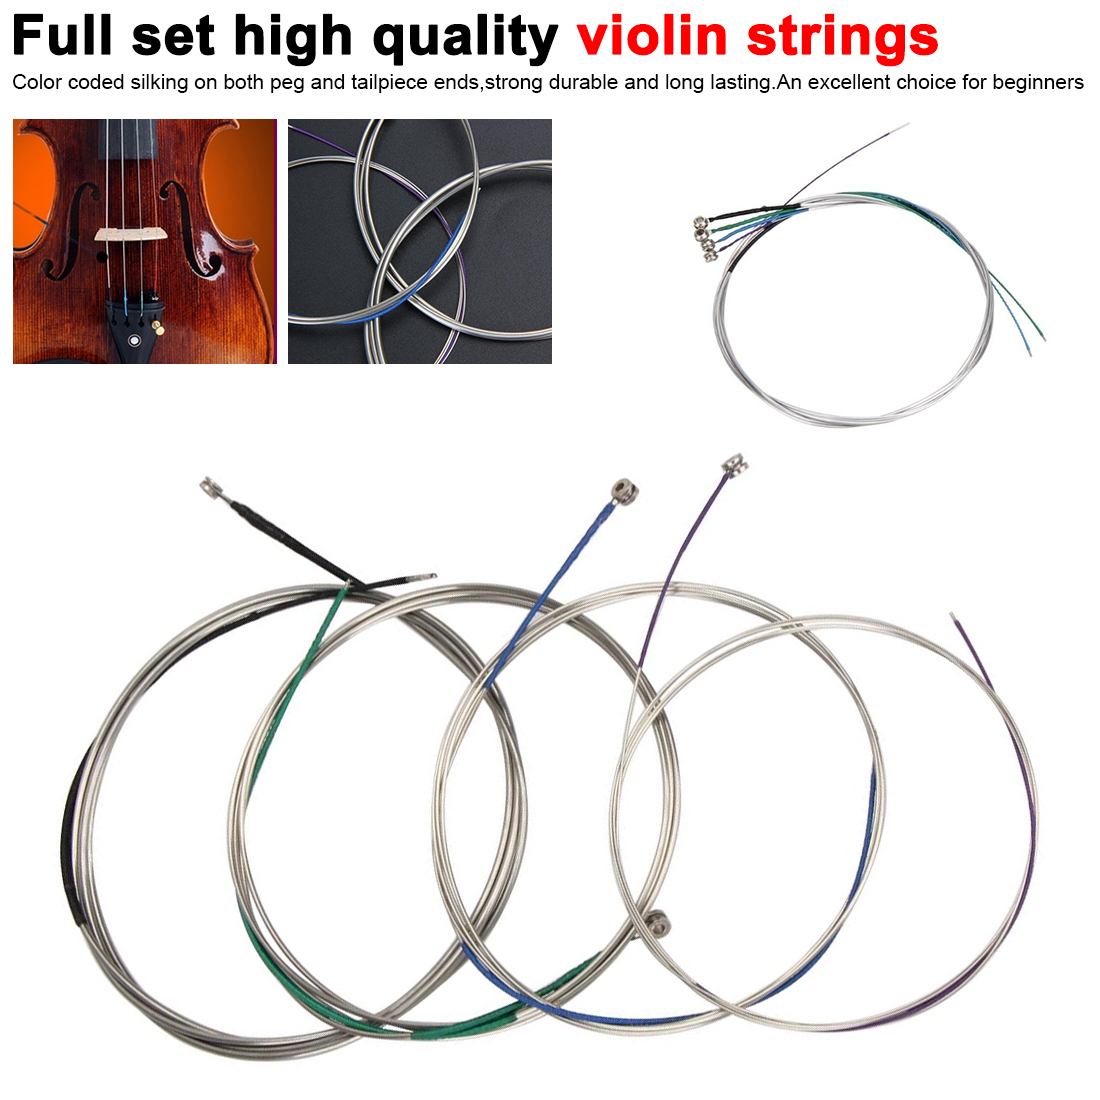 For Violin Full Set High Quality Violin Strings Size 4/4 & 3/4 Violin Strings Steel Strings G D A and E Instrument Accessories